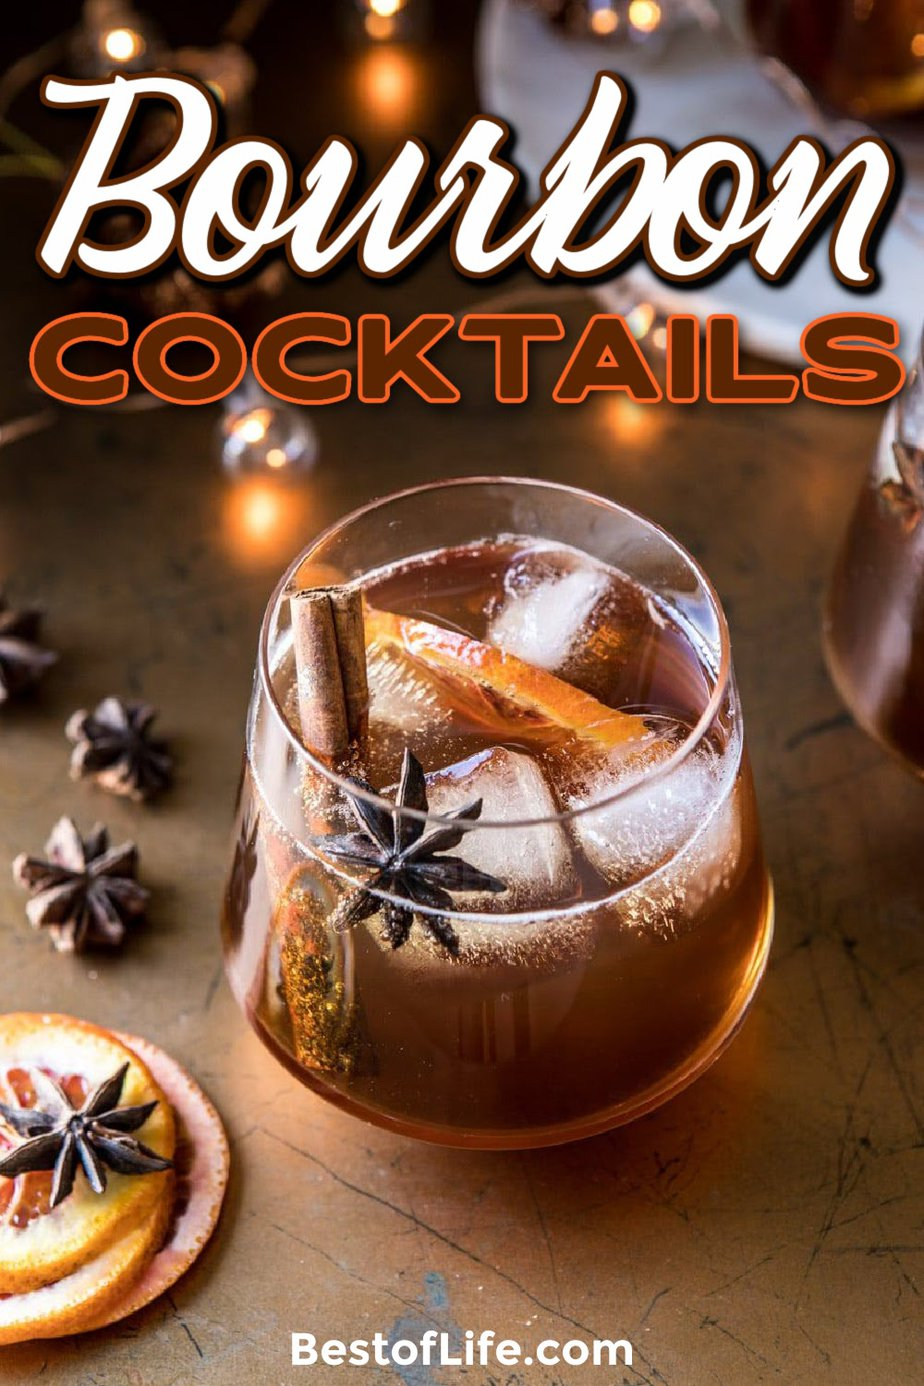 Chilly fall days mean it is time to cozy up with some of the best bourbon cocktails for fall! The good news? They are delicious all year round! Fall Recipes   Cocktail Recipes for Fall   Bourbon Cocktail Recipes   Warming Cocktail Recipes   Recipes for Fall Parties   Cocktails for Parties   Drink Recipes for a Crowd #bourbonrecipes #fallcocktails via @thebestoflife